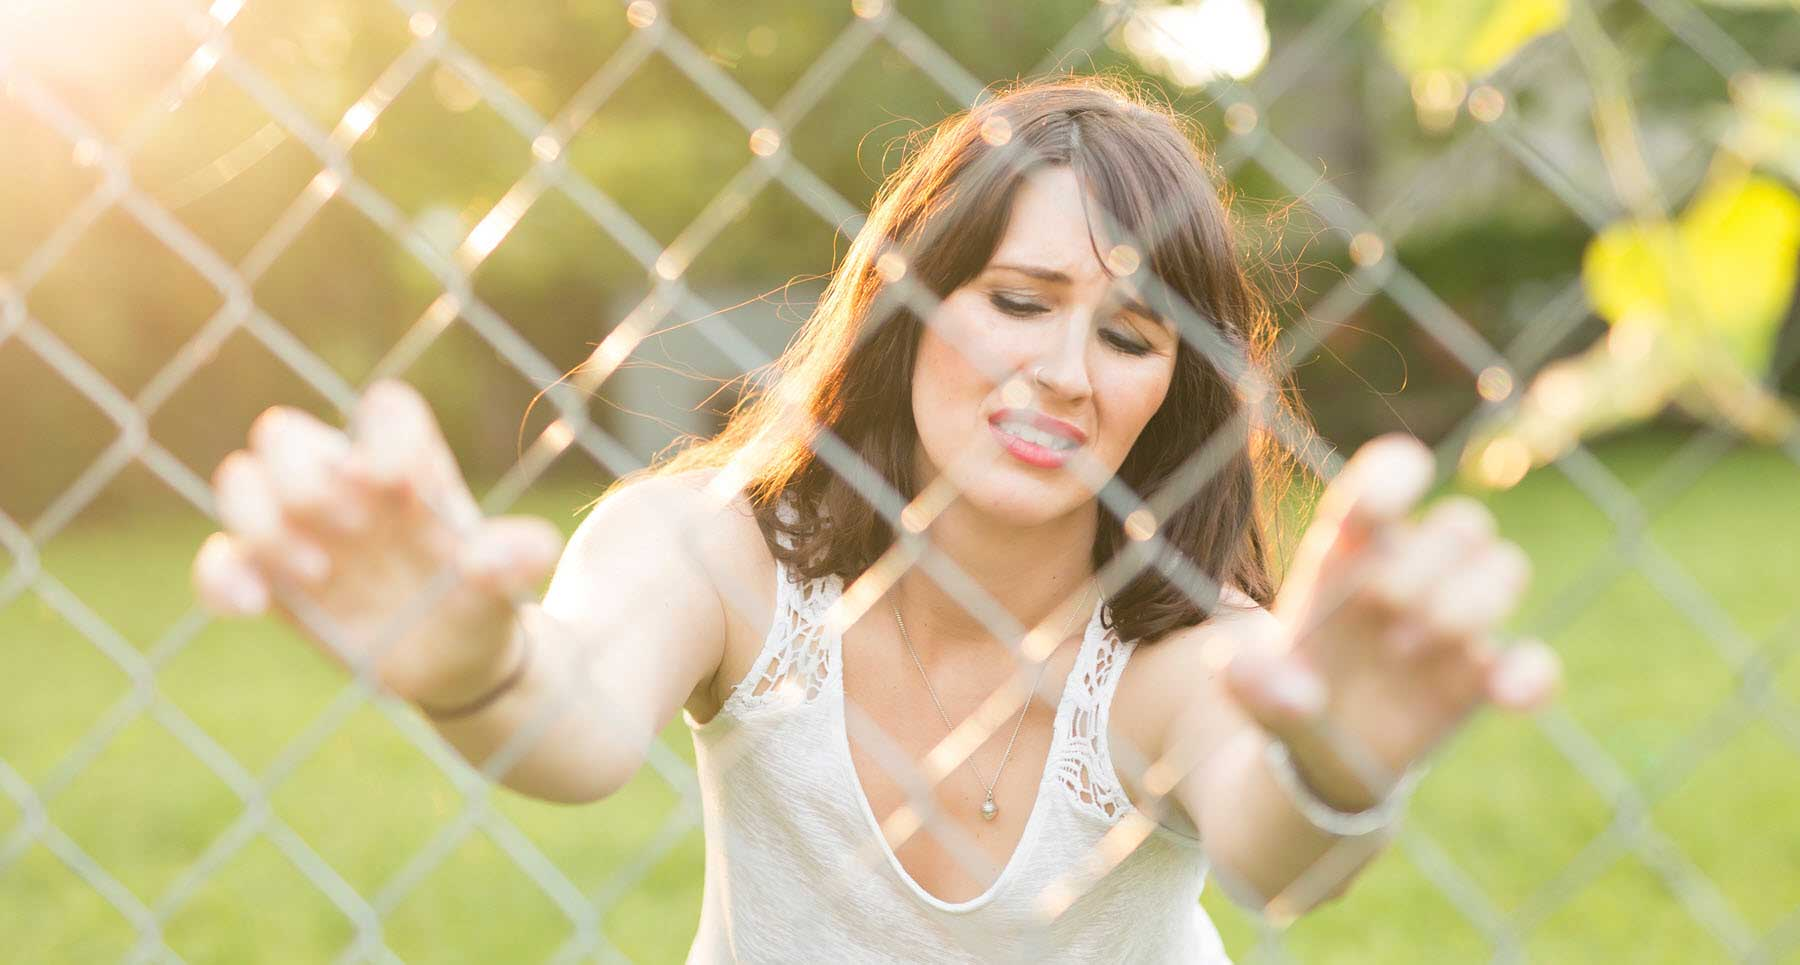 woman-holding-on-to-a-chain-link-fence-wanting-to-recover-after-leaving-an-abusive-relationship